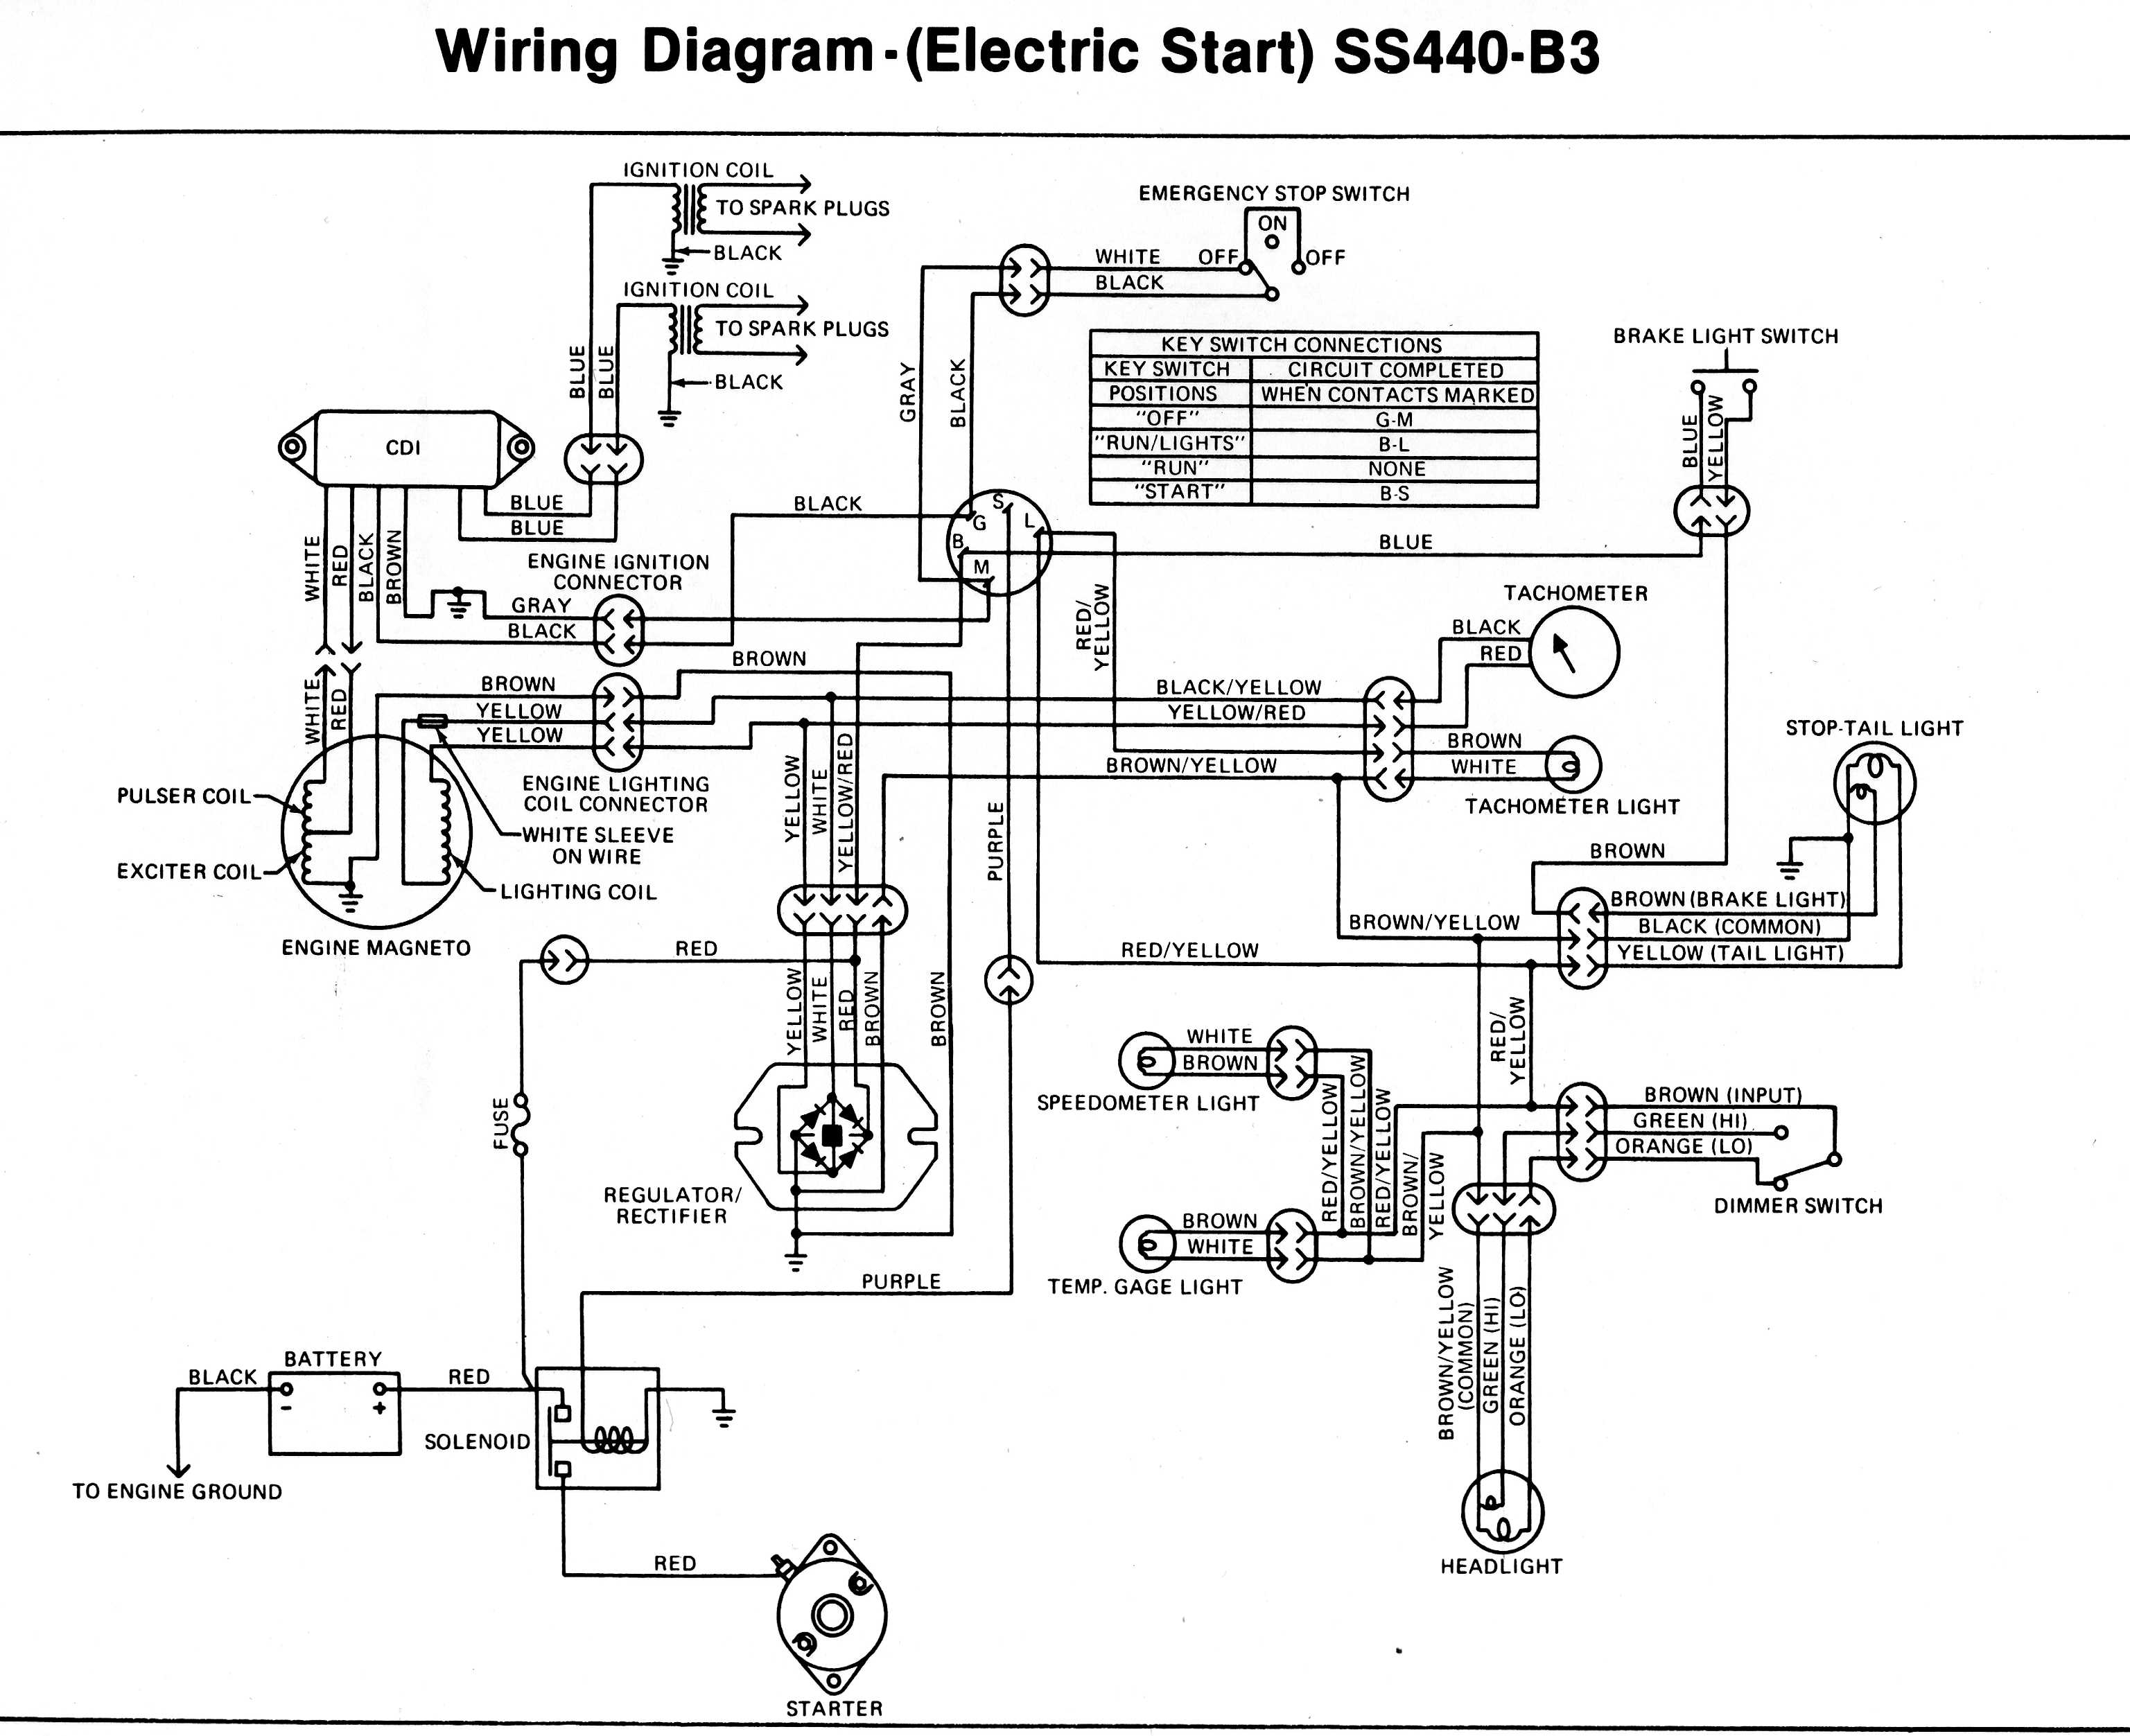 03 saturn ion srs wiring diagram wiring diagram database 2000 saturn sl2 wiring-diagram